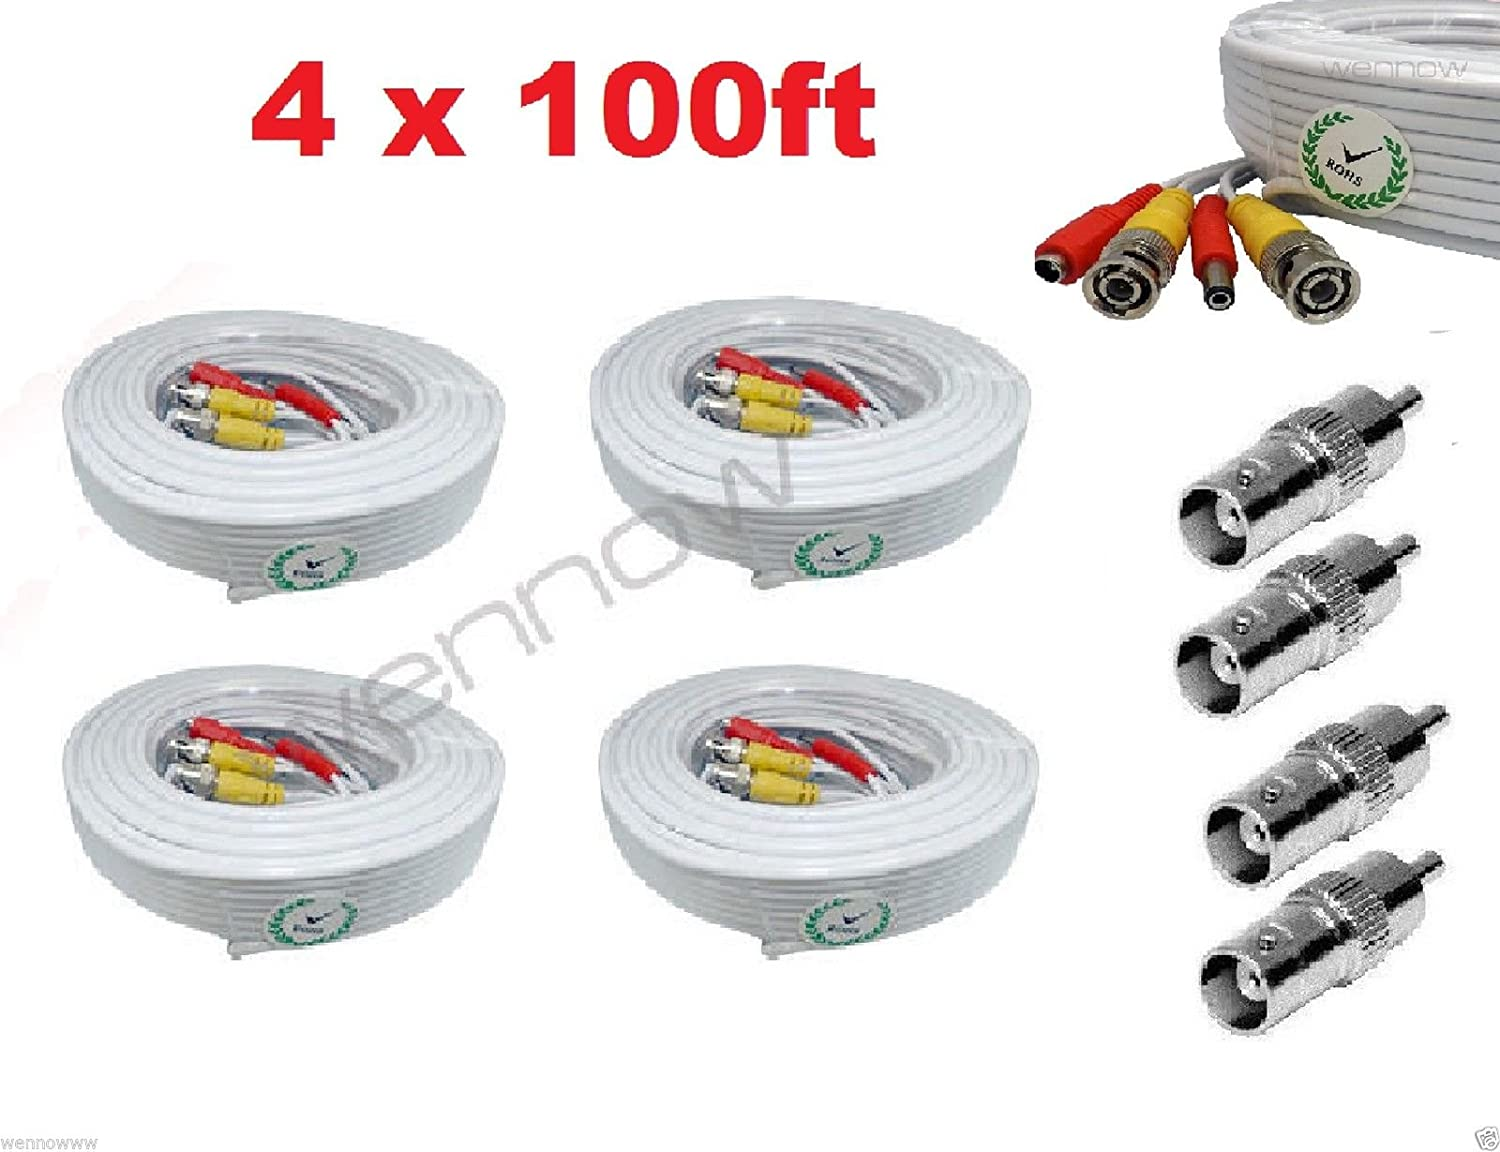 Wennow Premium Quality 4x100Ft Super intense SALE Video and C Free shipping New for Zmodo Power Cable